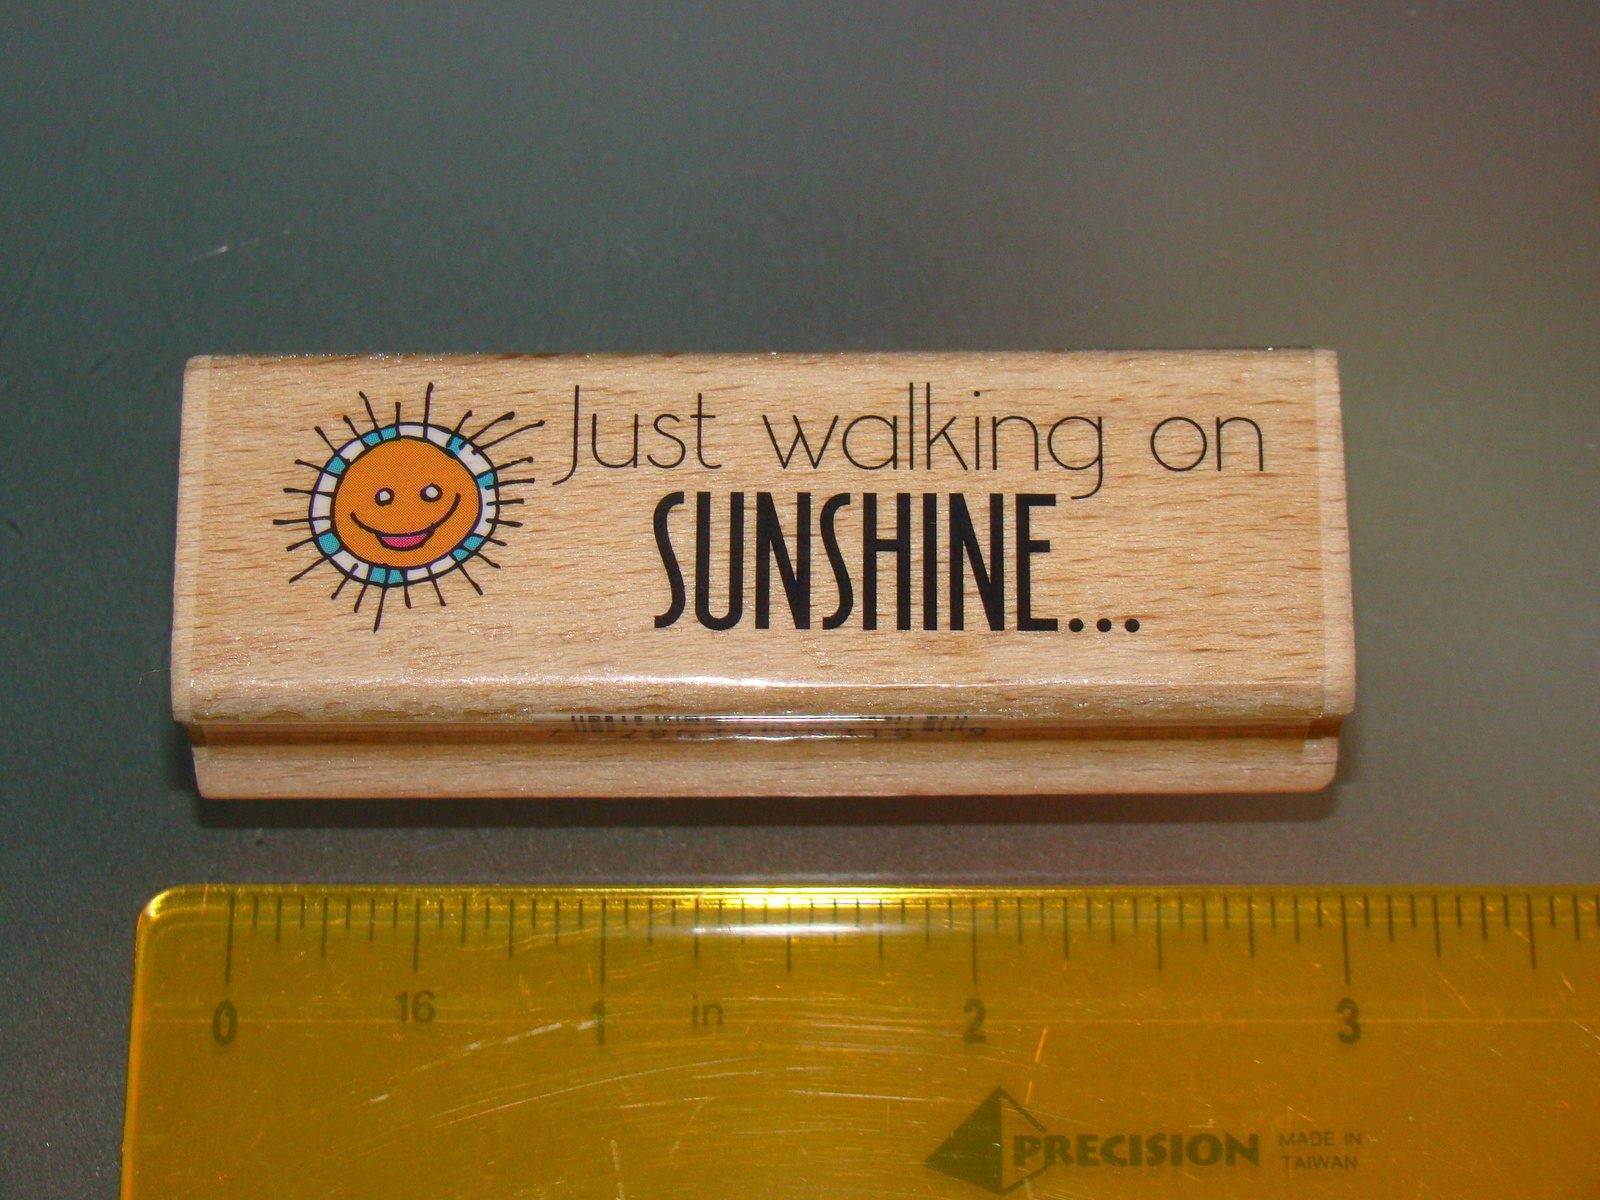 Rubber Stamps - Just walking on SUNSHINE... (New)